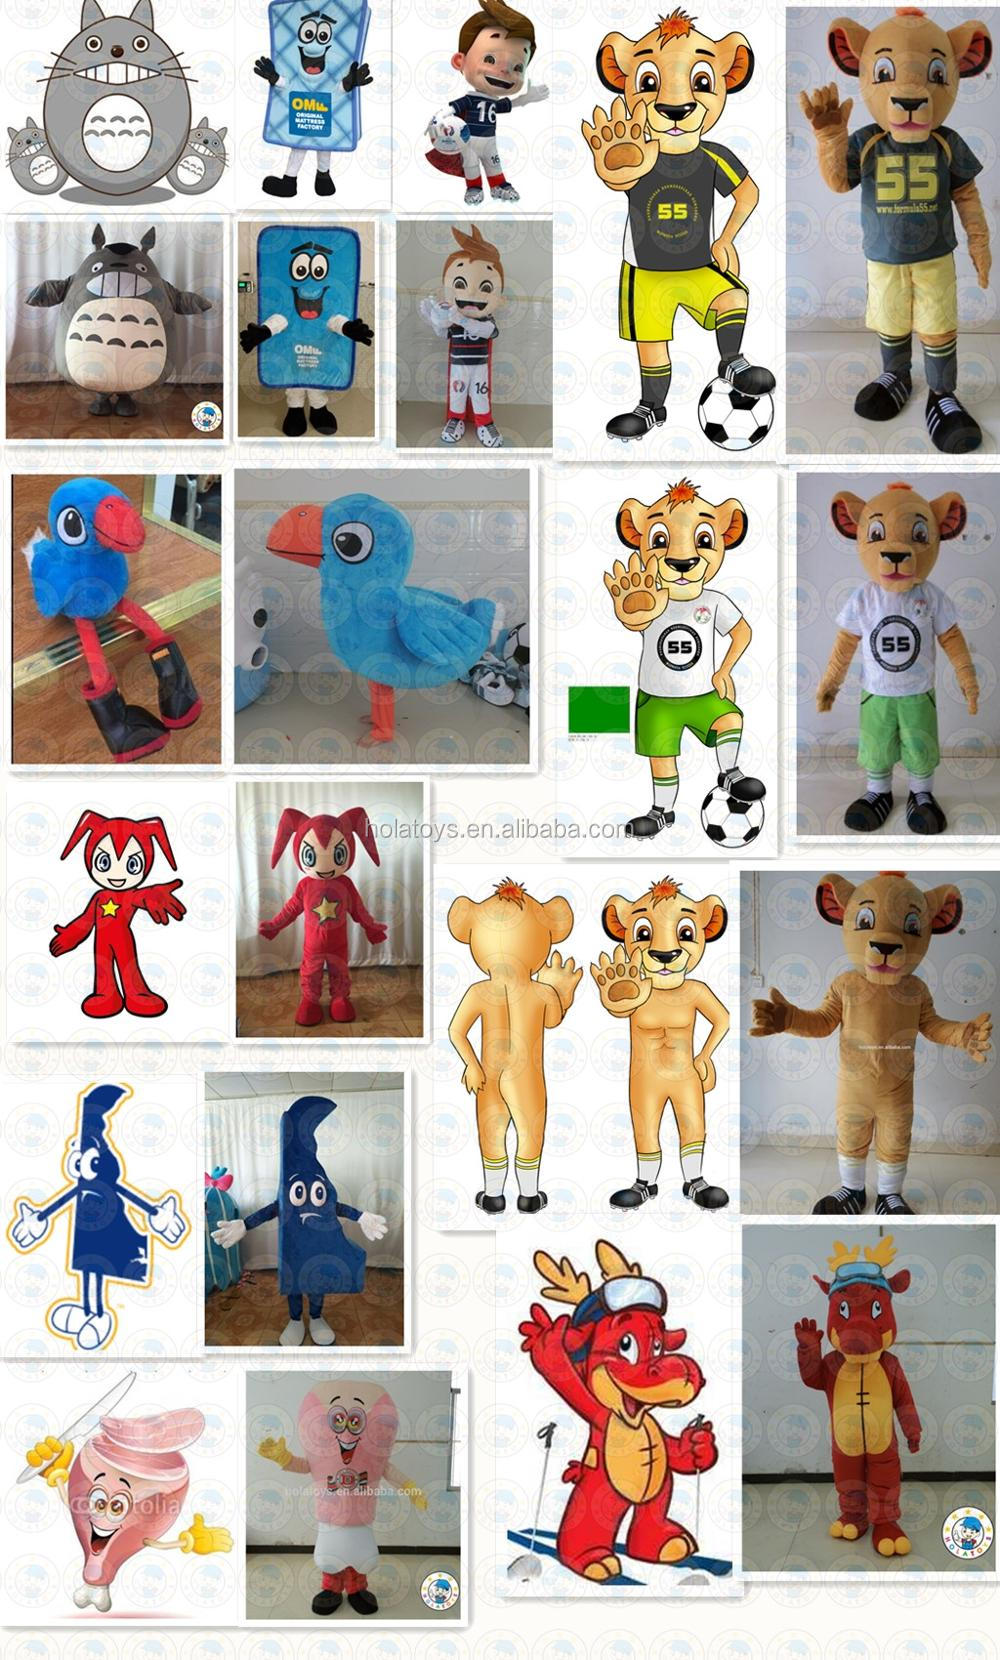 Hola cute mascots costumes for adult/funny mascot costumes for cosplay